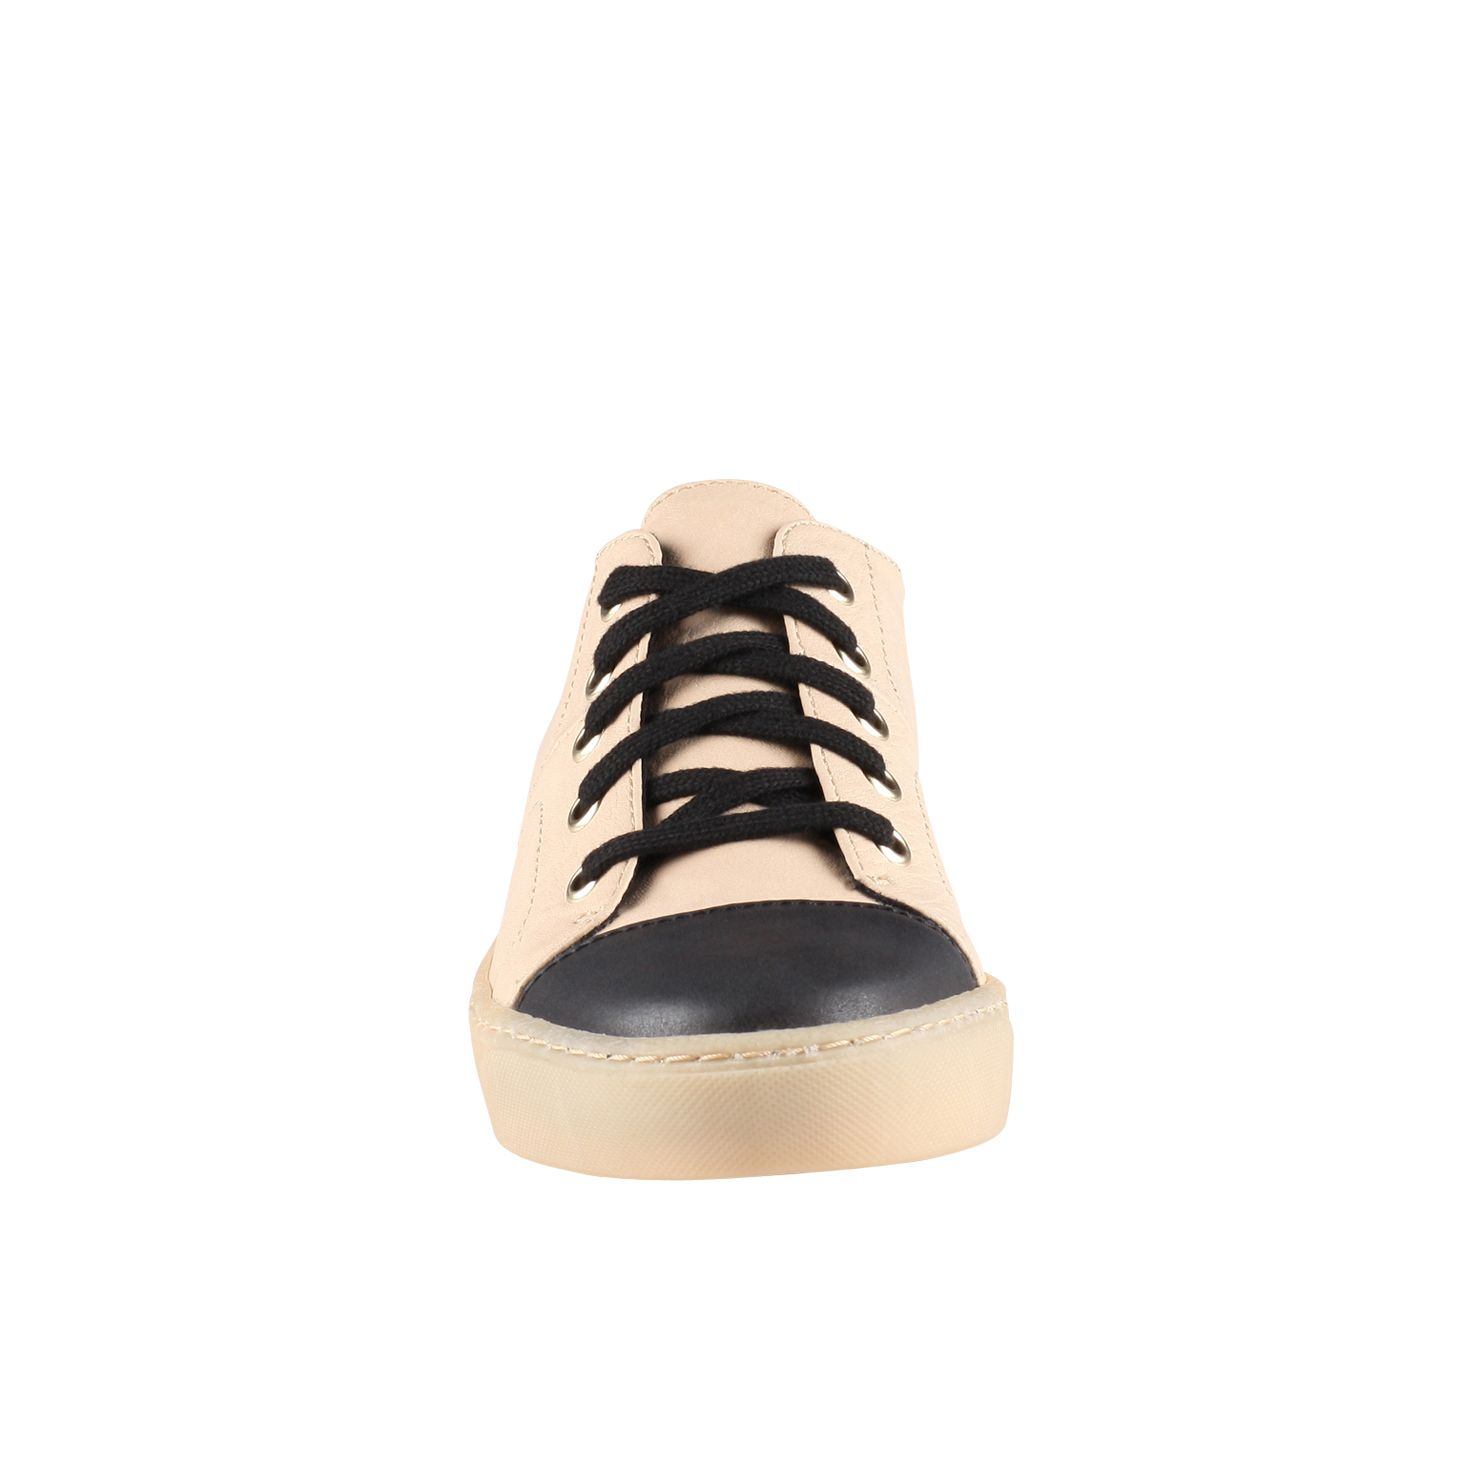 Rudberg platform lace up trainer shoes